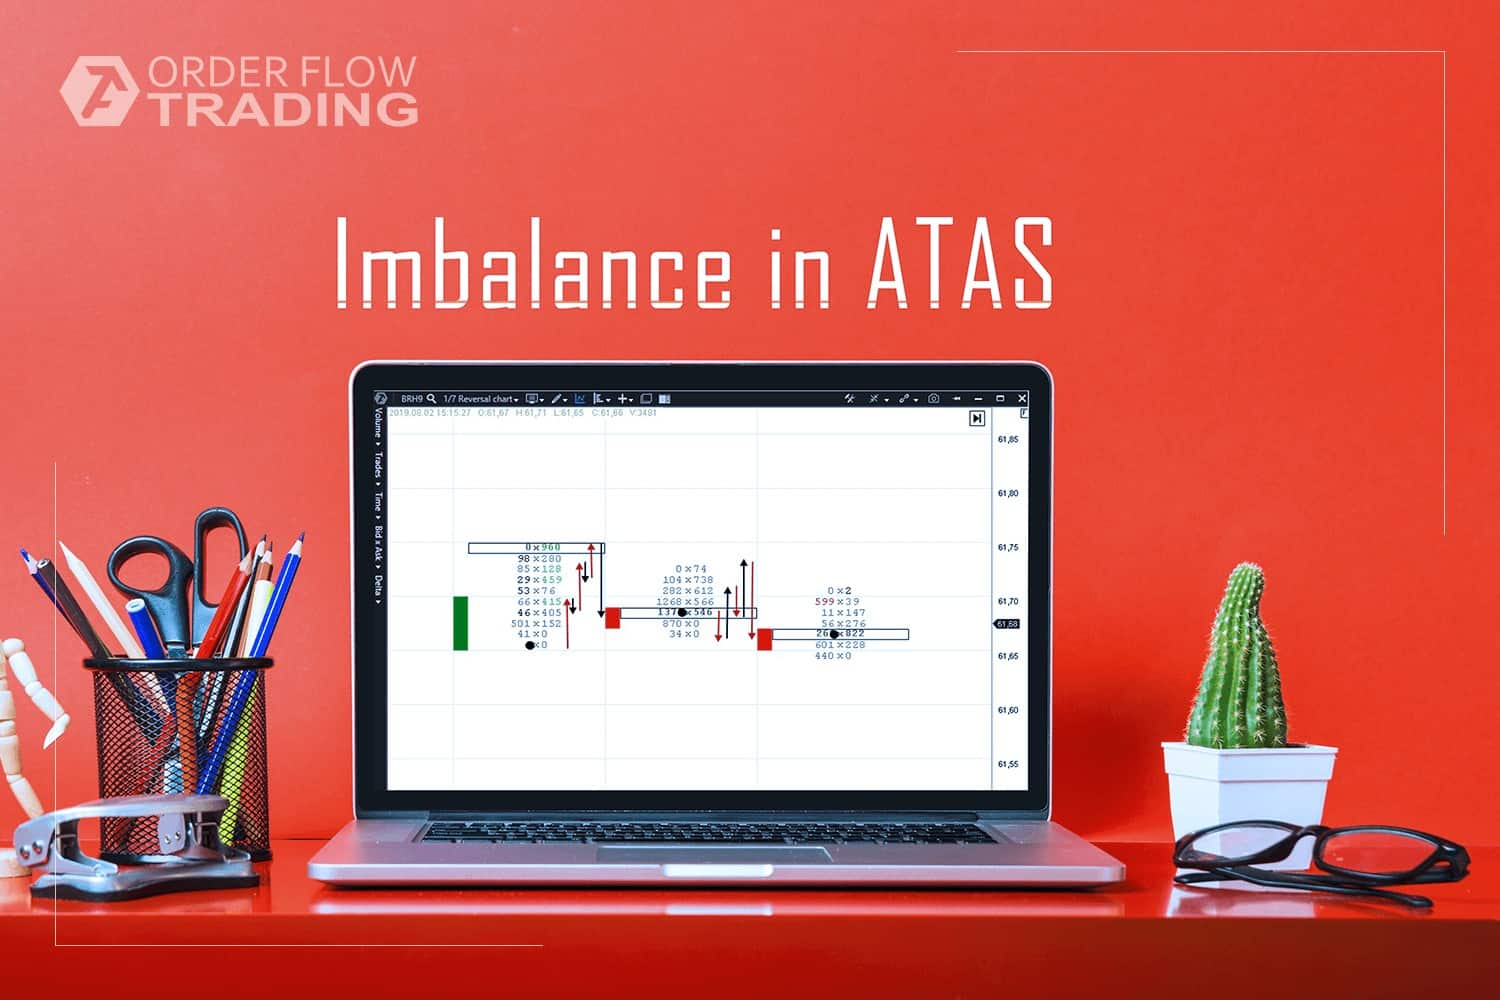 How to find and trade imbalance.